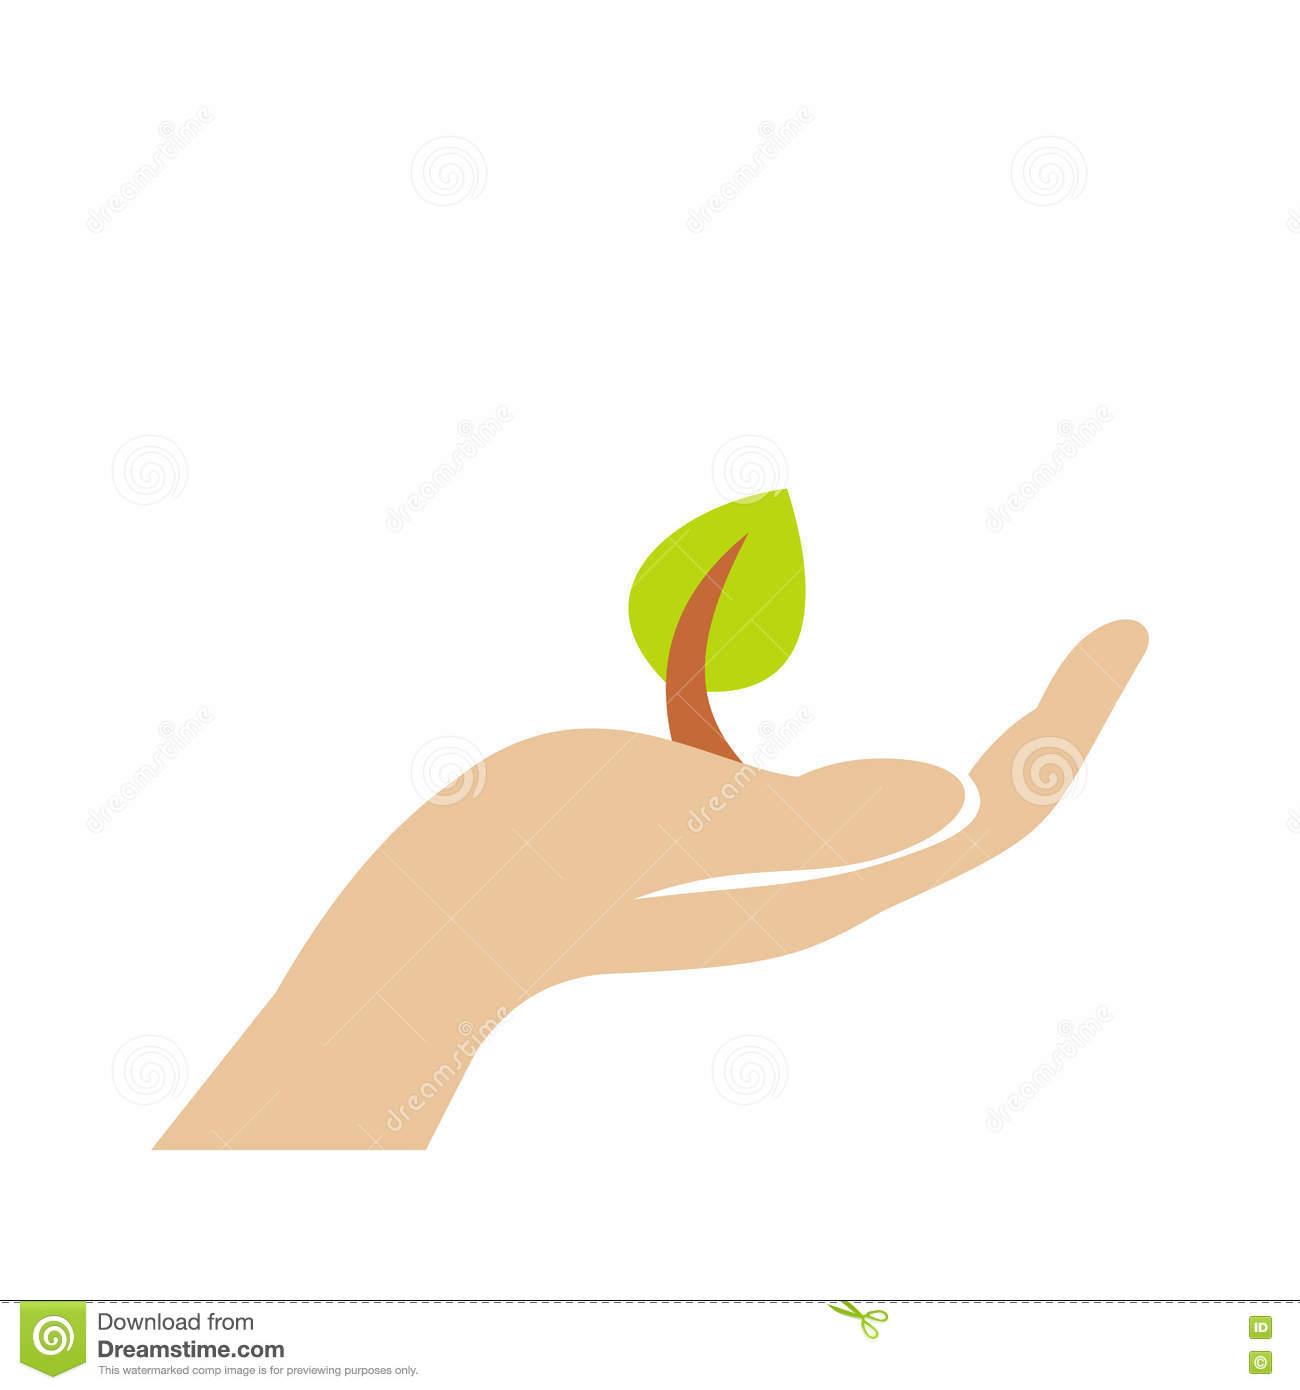 Sprout In Hand Flat Icon Stock Vector Illustration Of Emblem 79660881